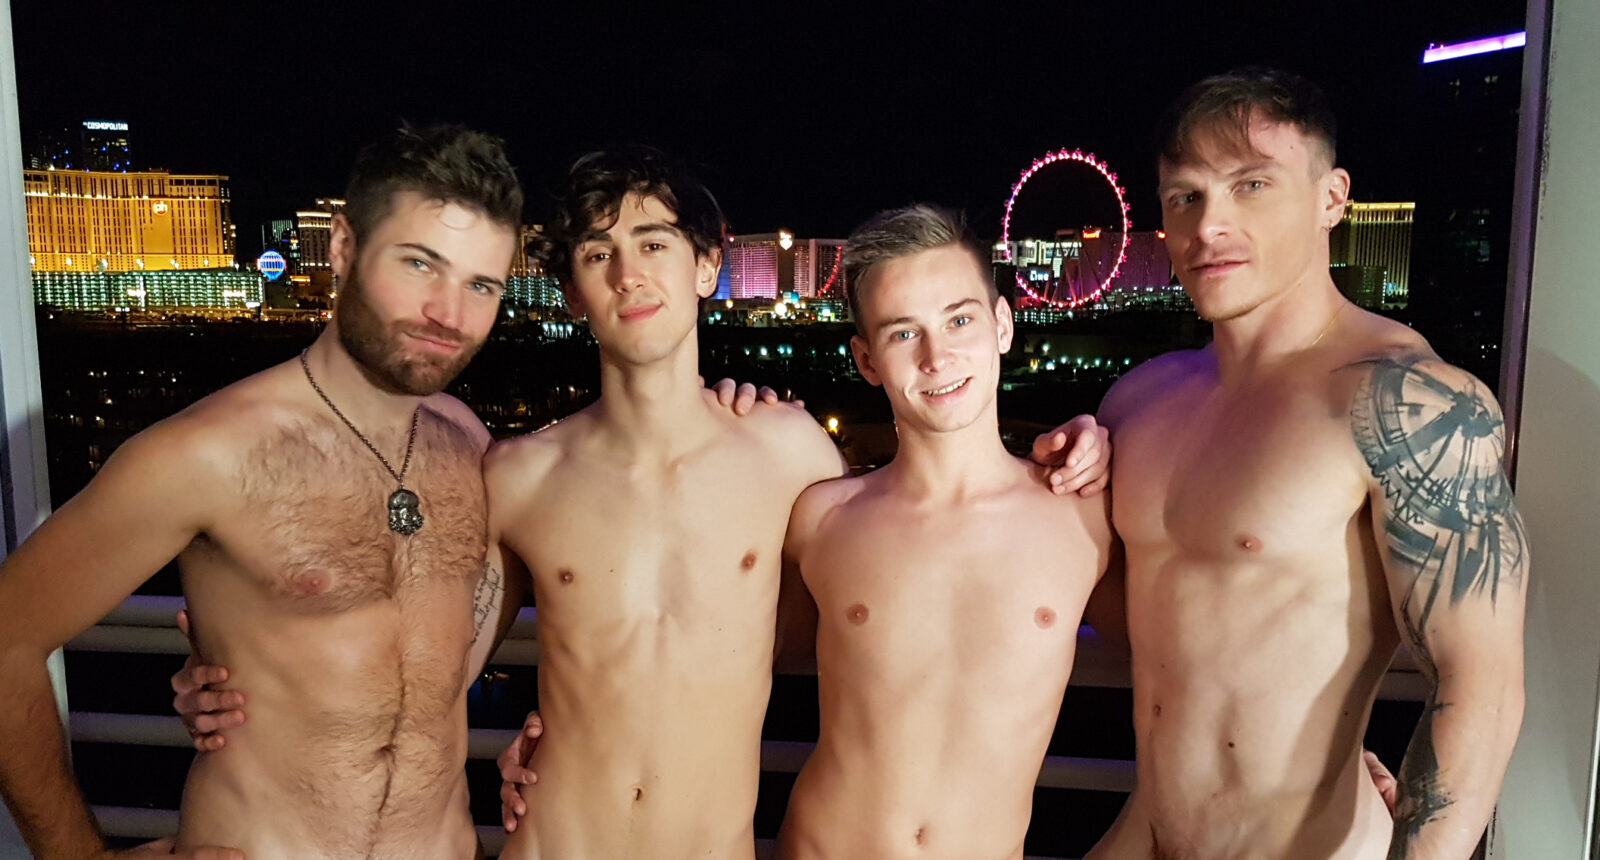 Which French Twinks Model are you?